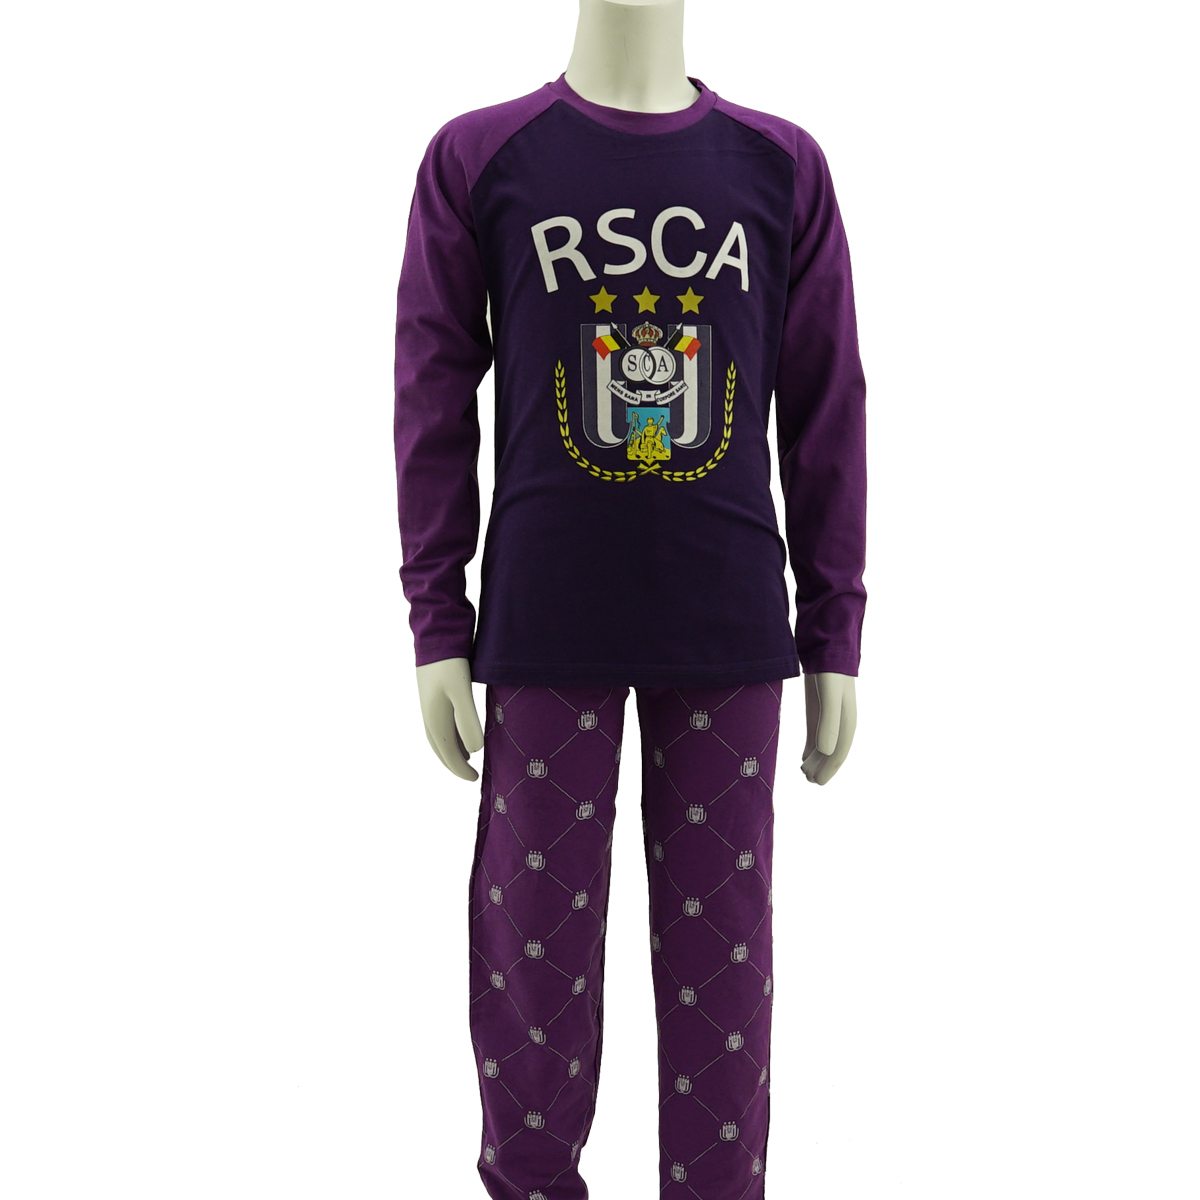 RSCA Pyjama Winter Kids